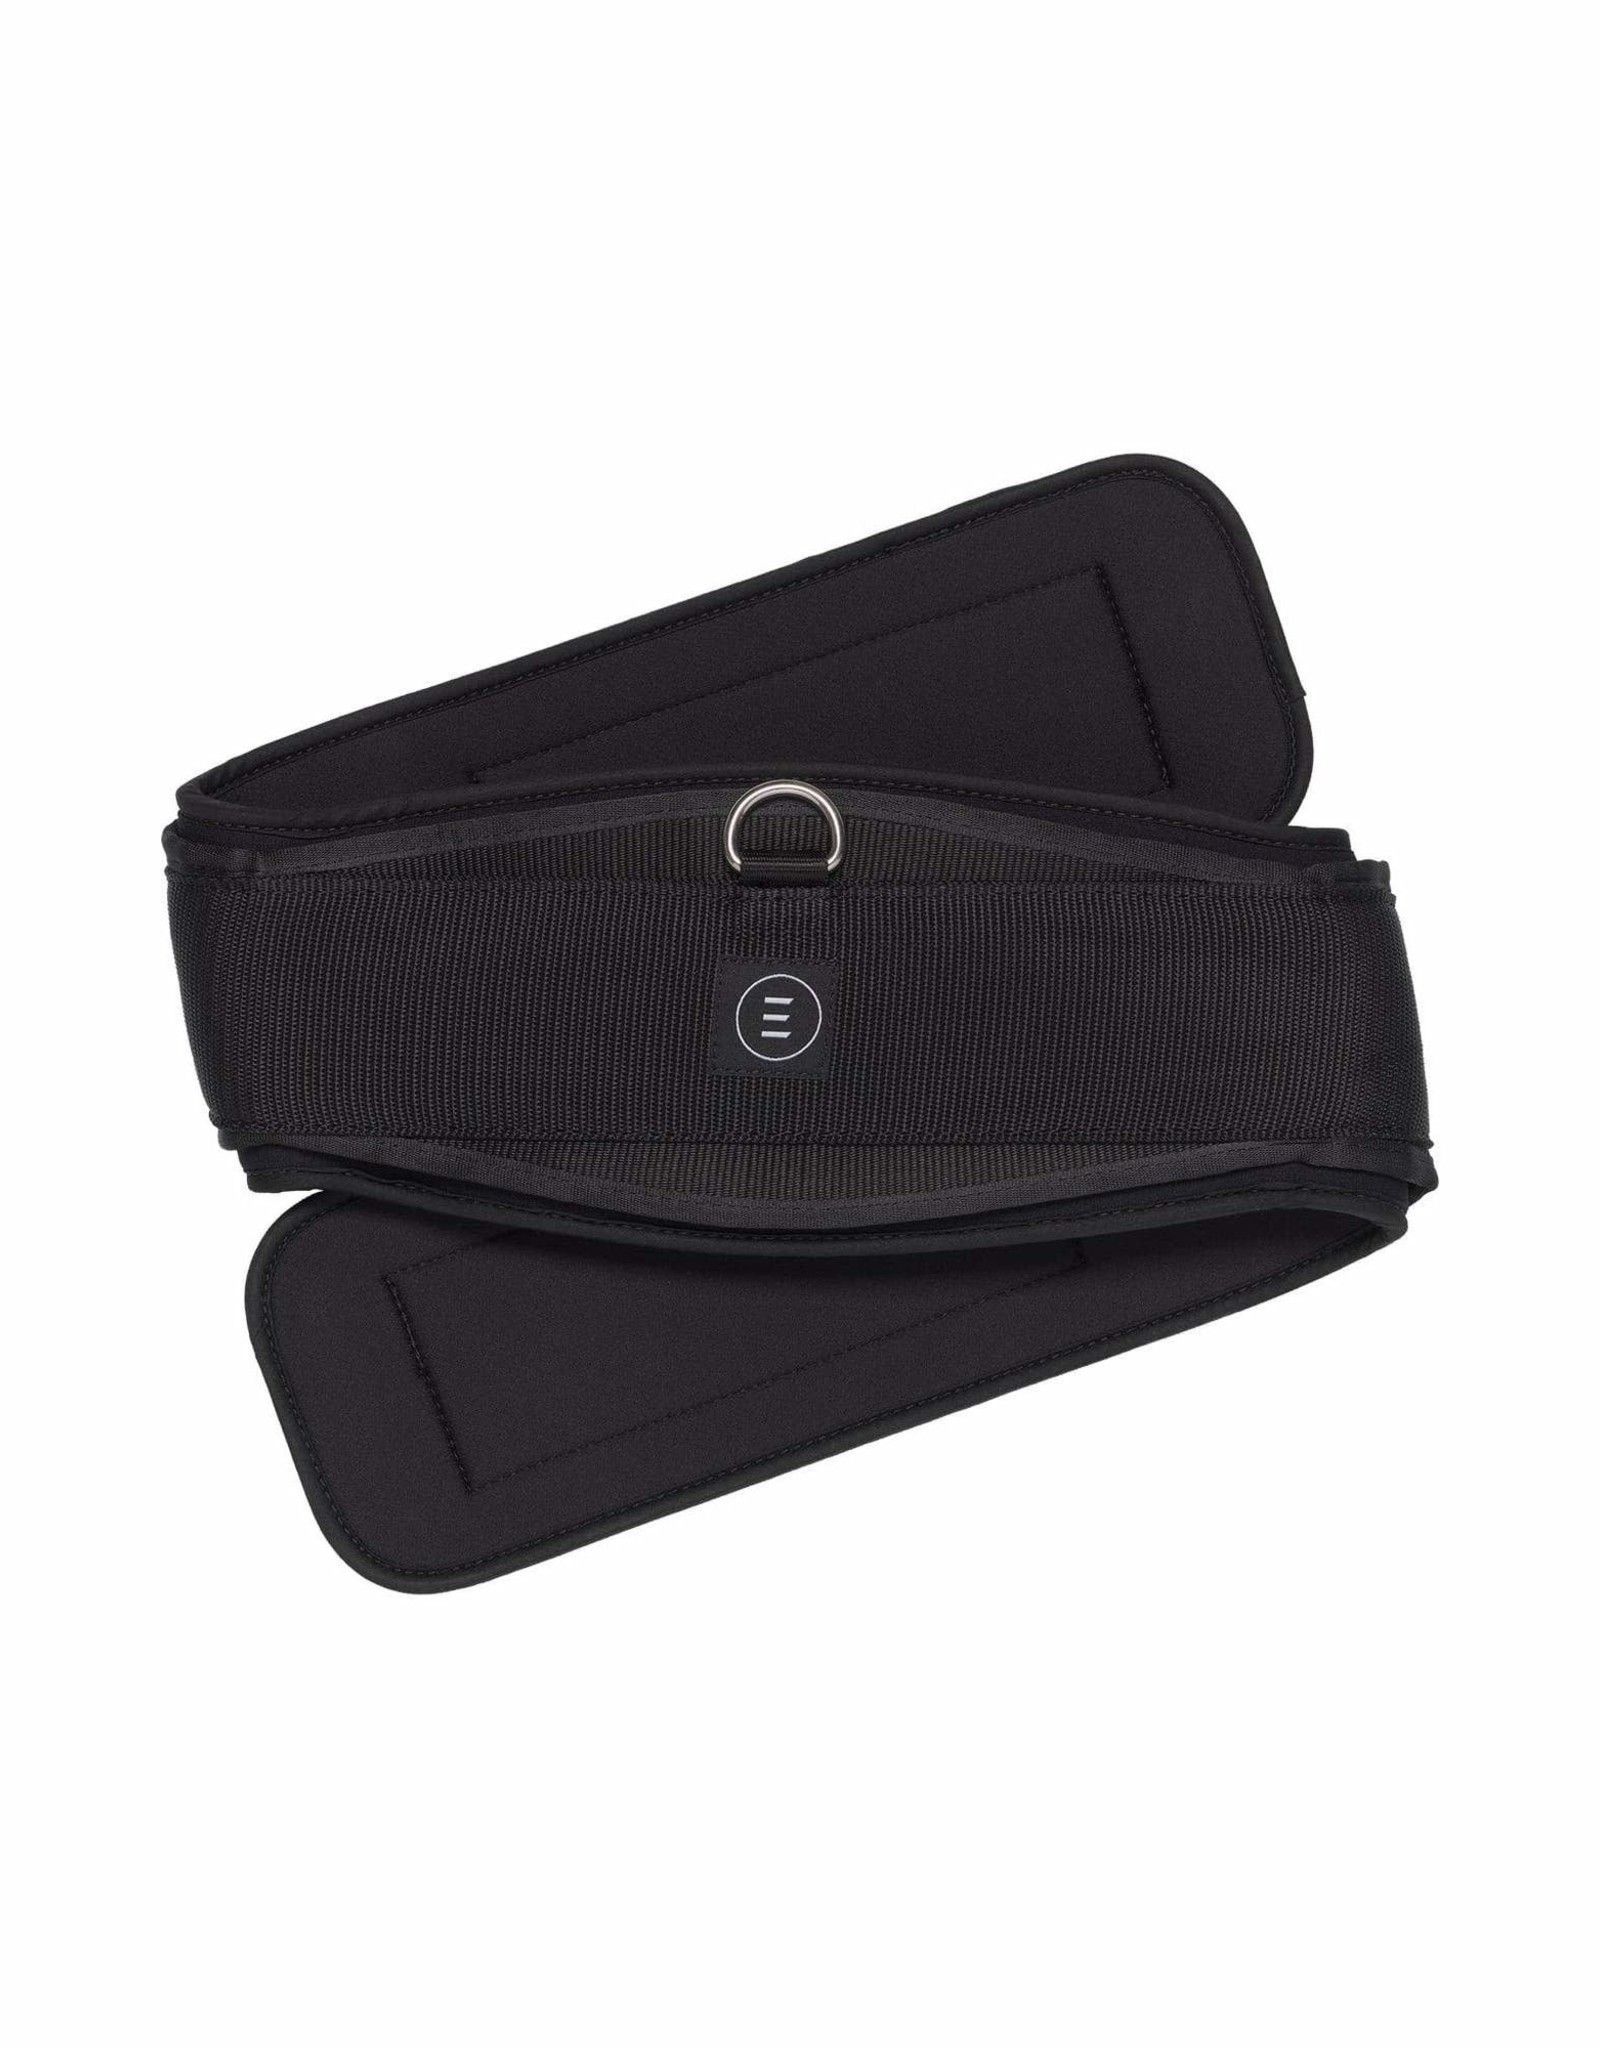 EQUIFIT ESSENTIAL DRESSAGE GIRTH WITH SMARTFABRIC LINER